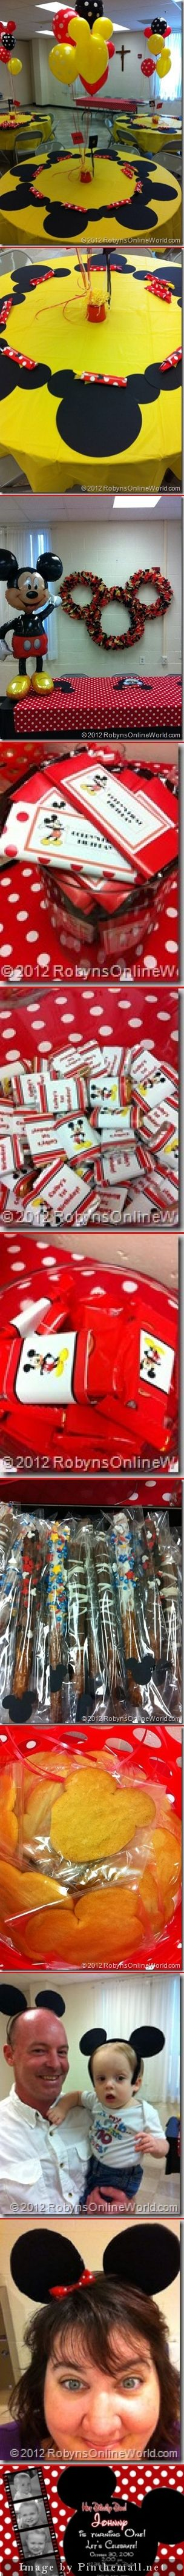 DIY Mickey Mouse and Minnie Mouse Birthday Party Decorations and Treats